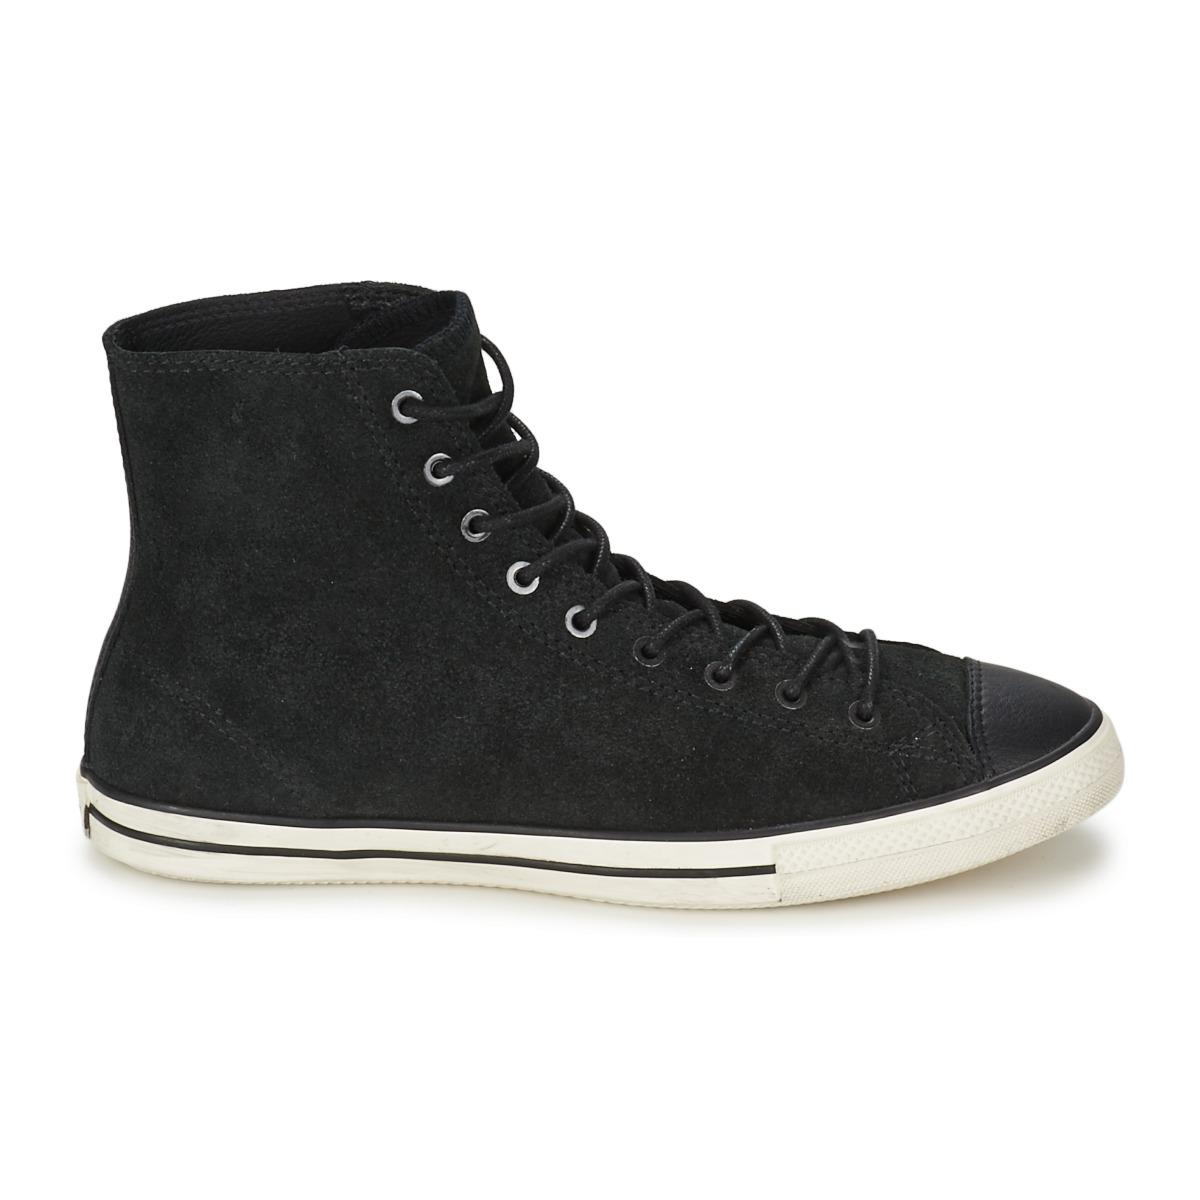 ed1e9d3a2594 Converse - Black All Star Fancy Leather Hi Shoes (high-top Trainers) -.  View fullscreen